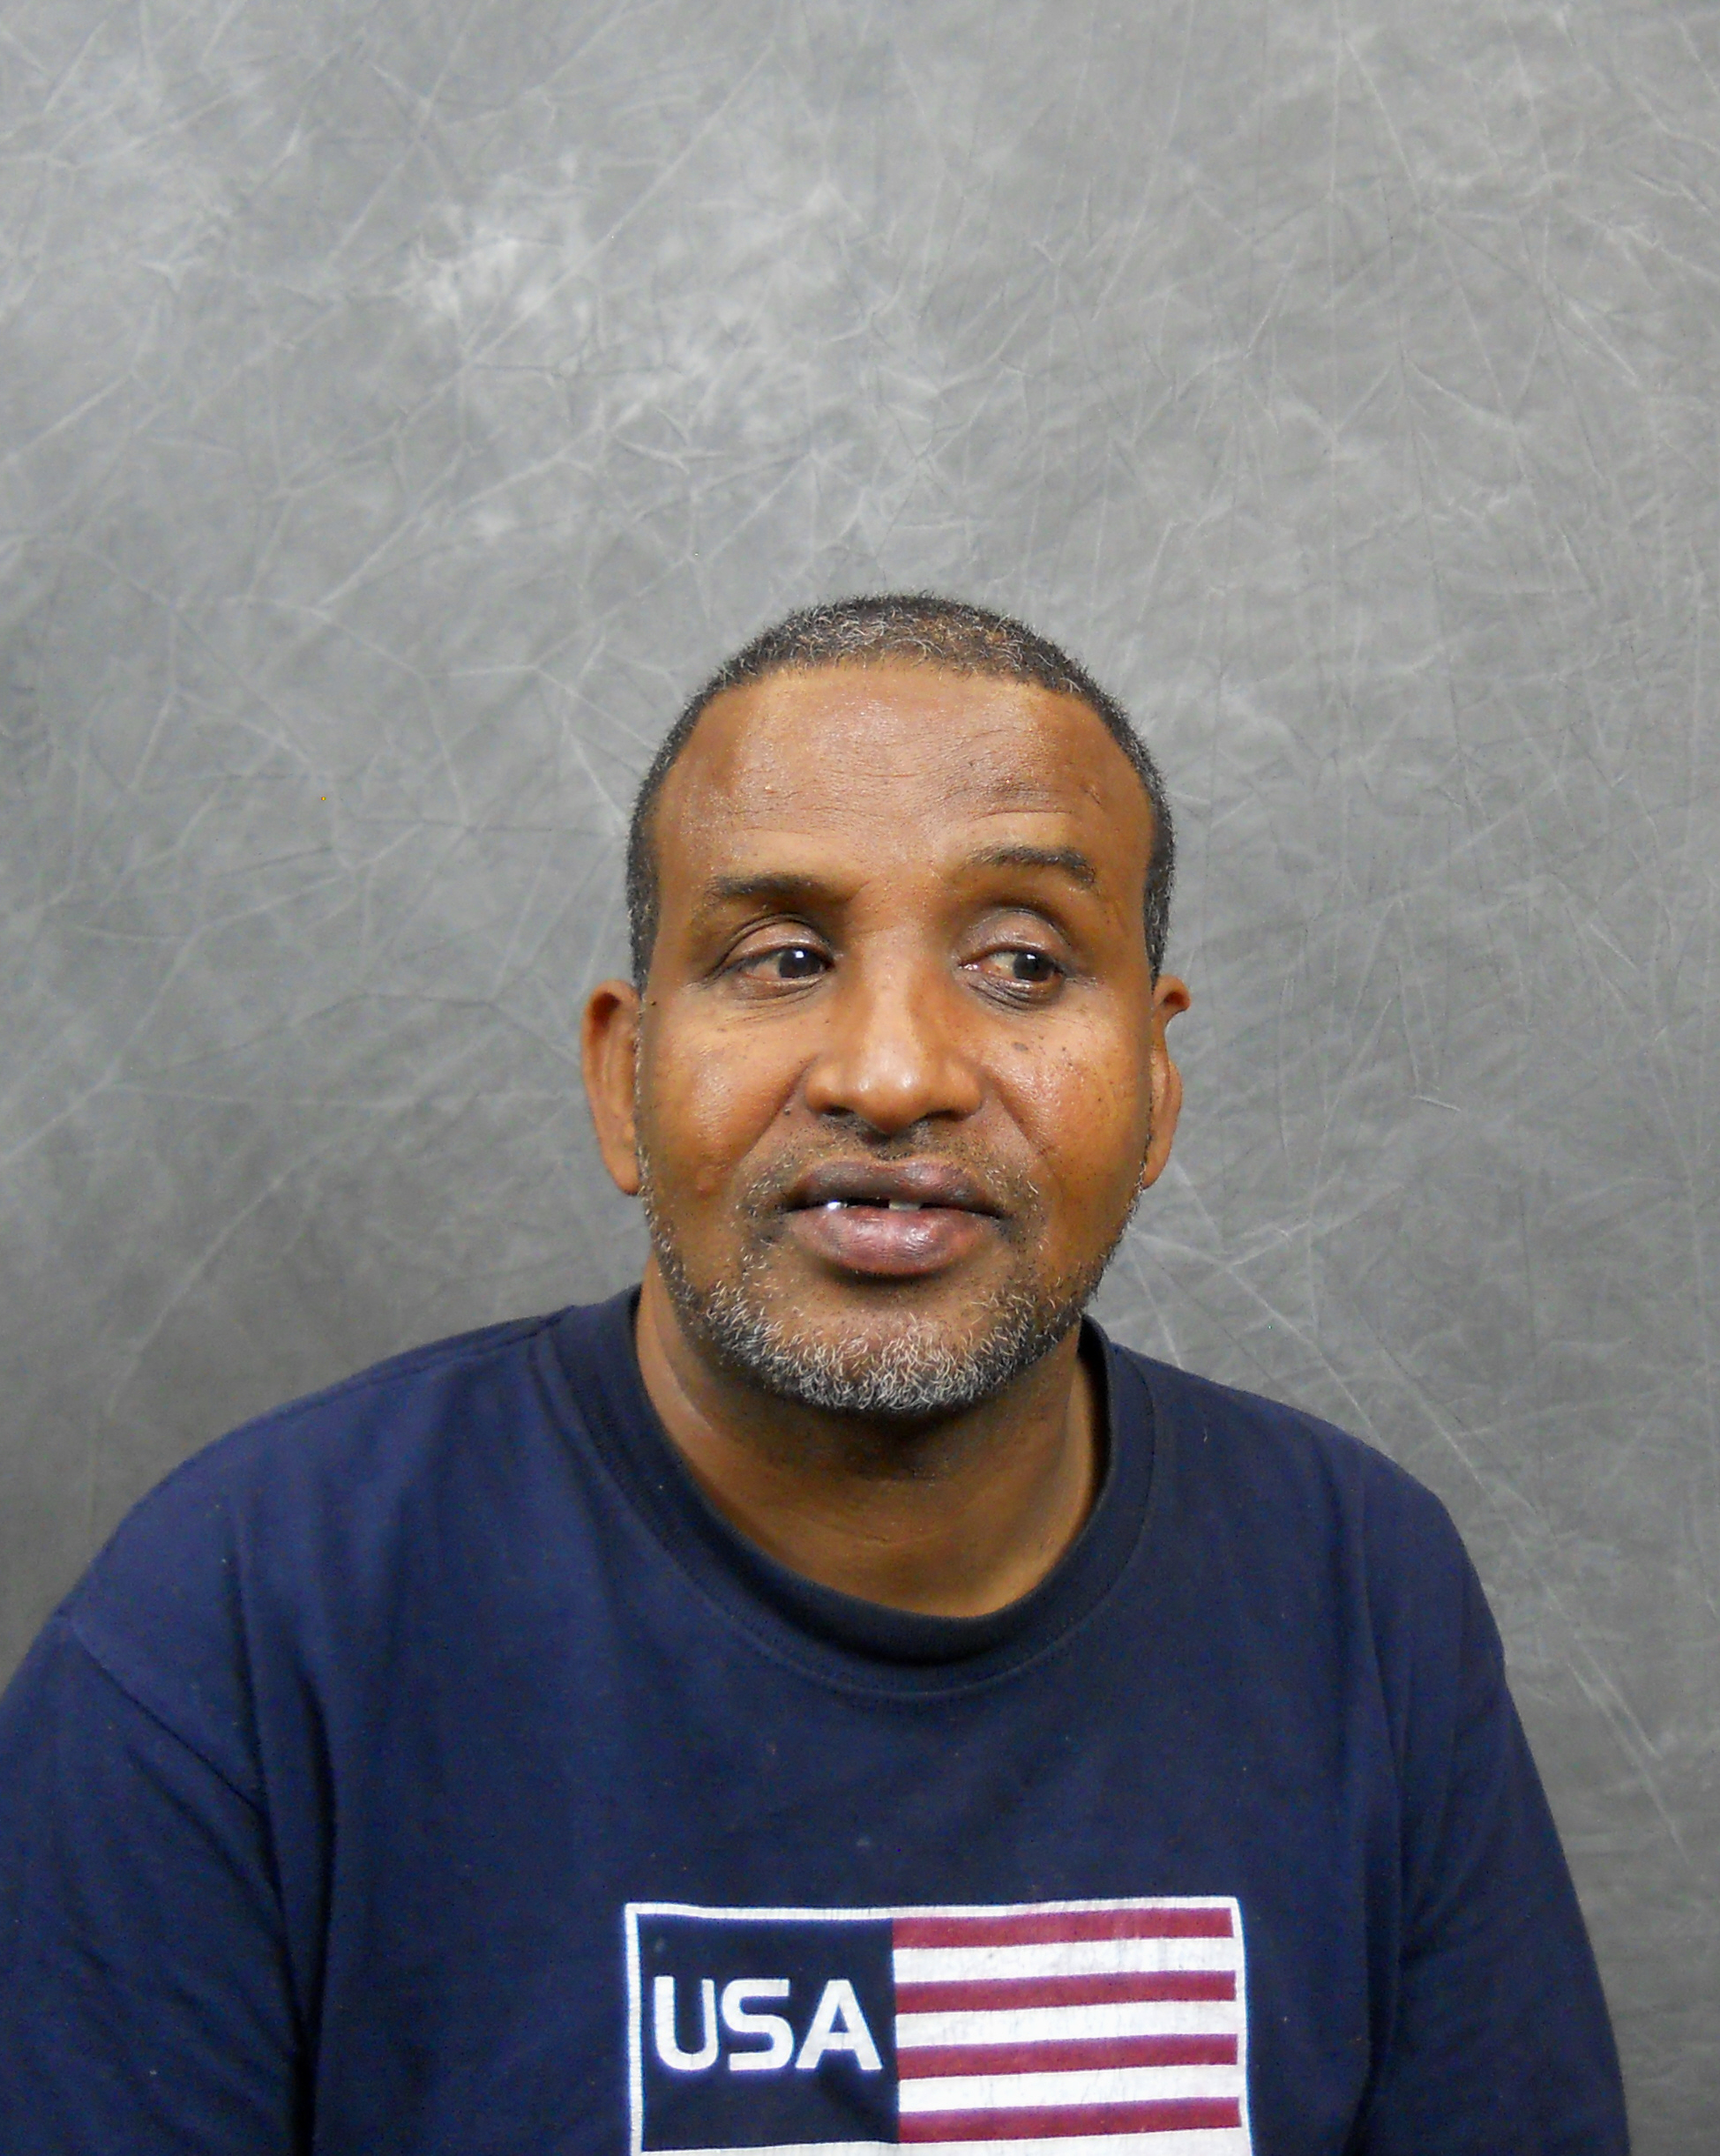 photo of DHUCUL ABDULKADIR